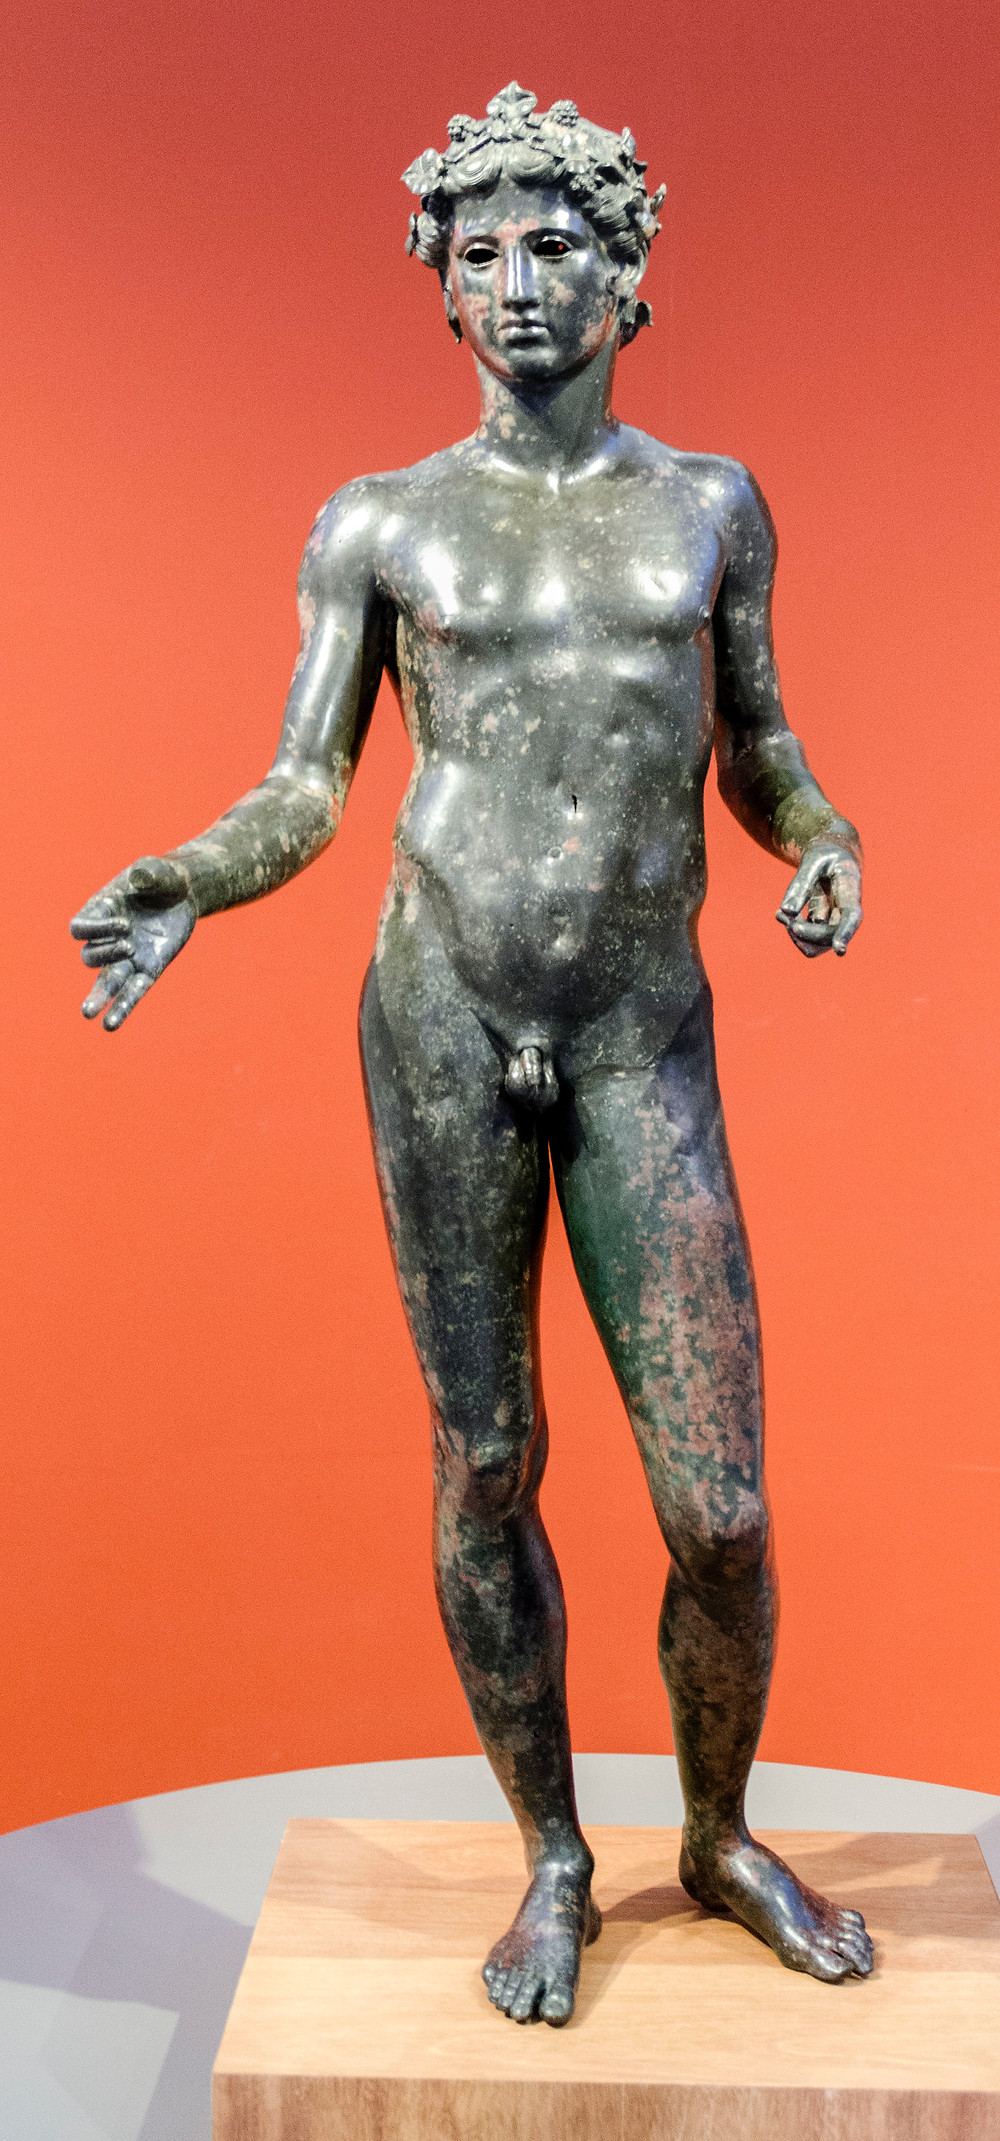 Ephebe of Antequera, a bronze statue from the 1st century A.D. in the Antequera Municipal Museum